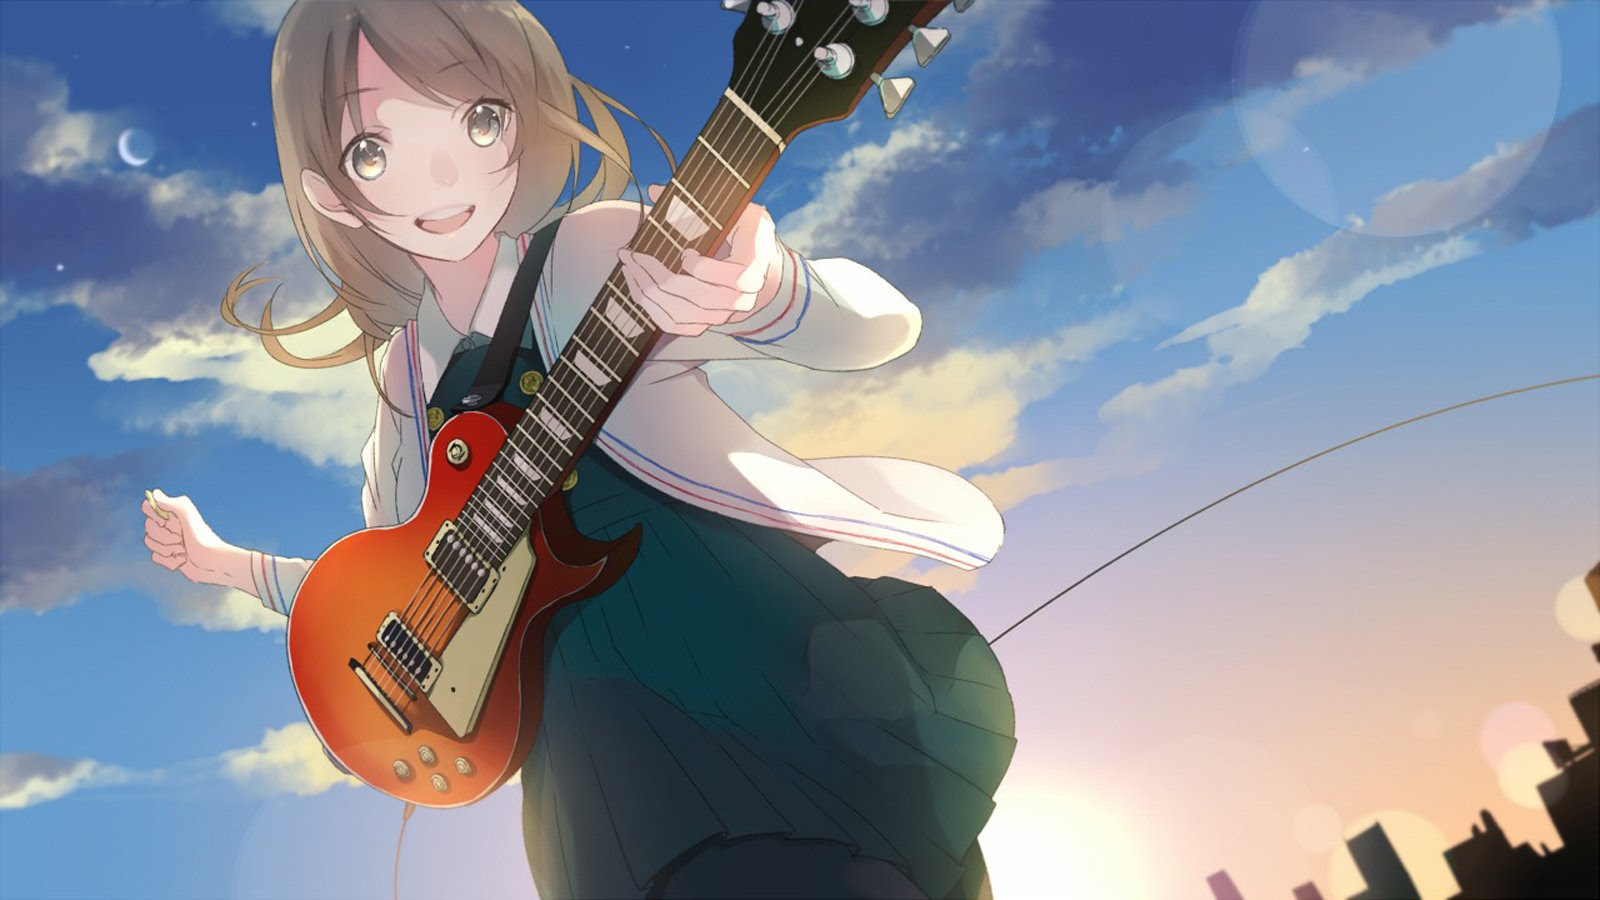 Cute Anime Girl With Guitar | Zoom Wallpapers